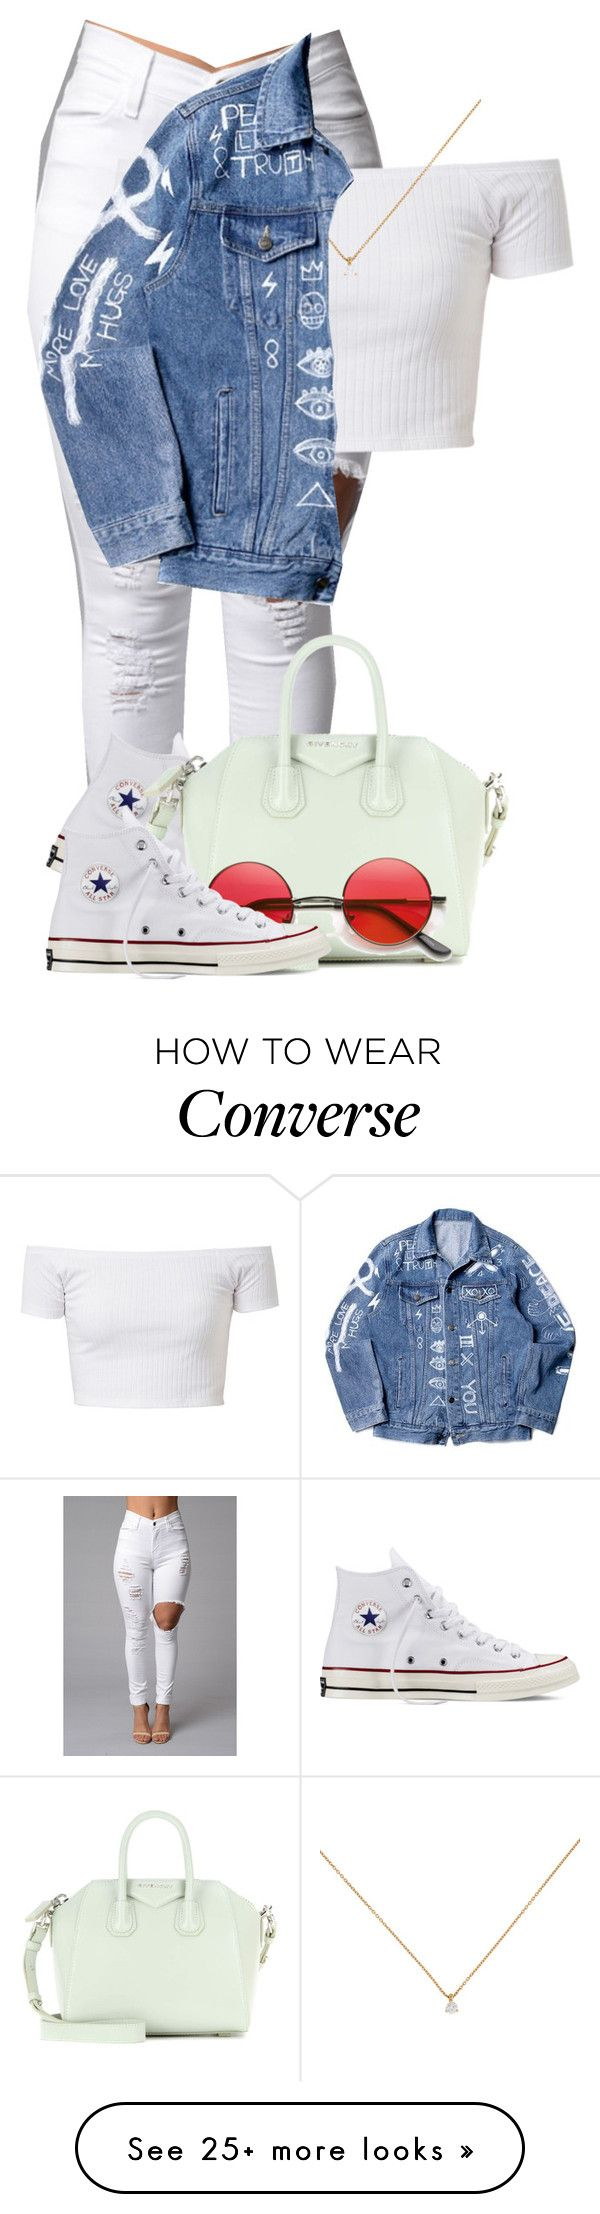 """"""":::"""" by camgueyana on Polyvore featuring Converse, Givenchy, women's clothing, women, female, woman, misses and juniors"""